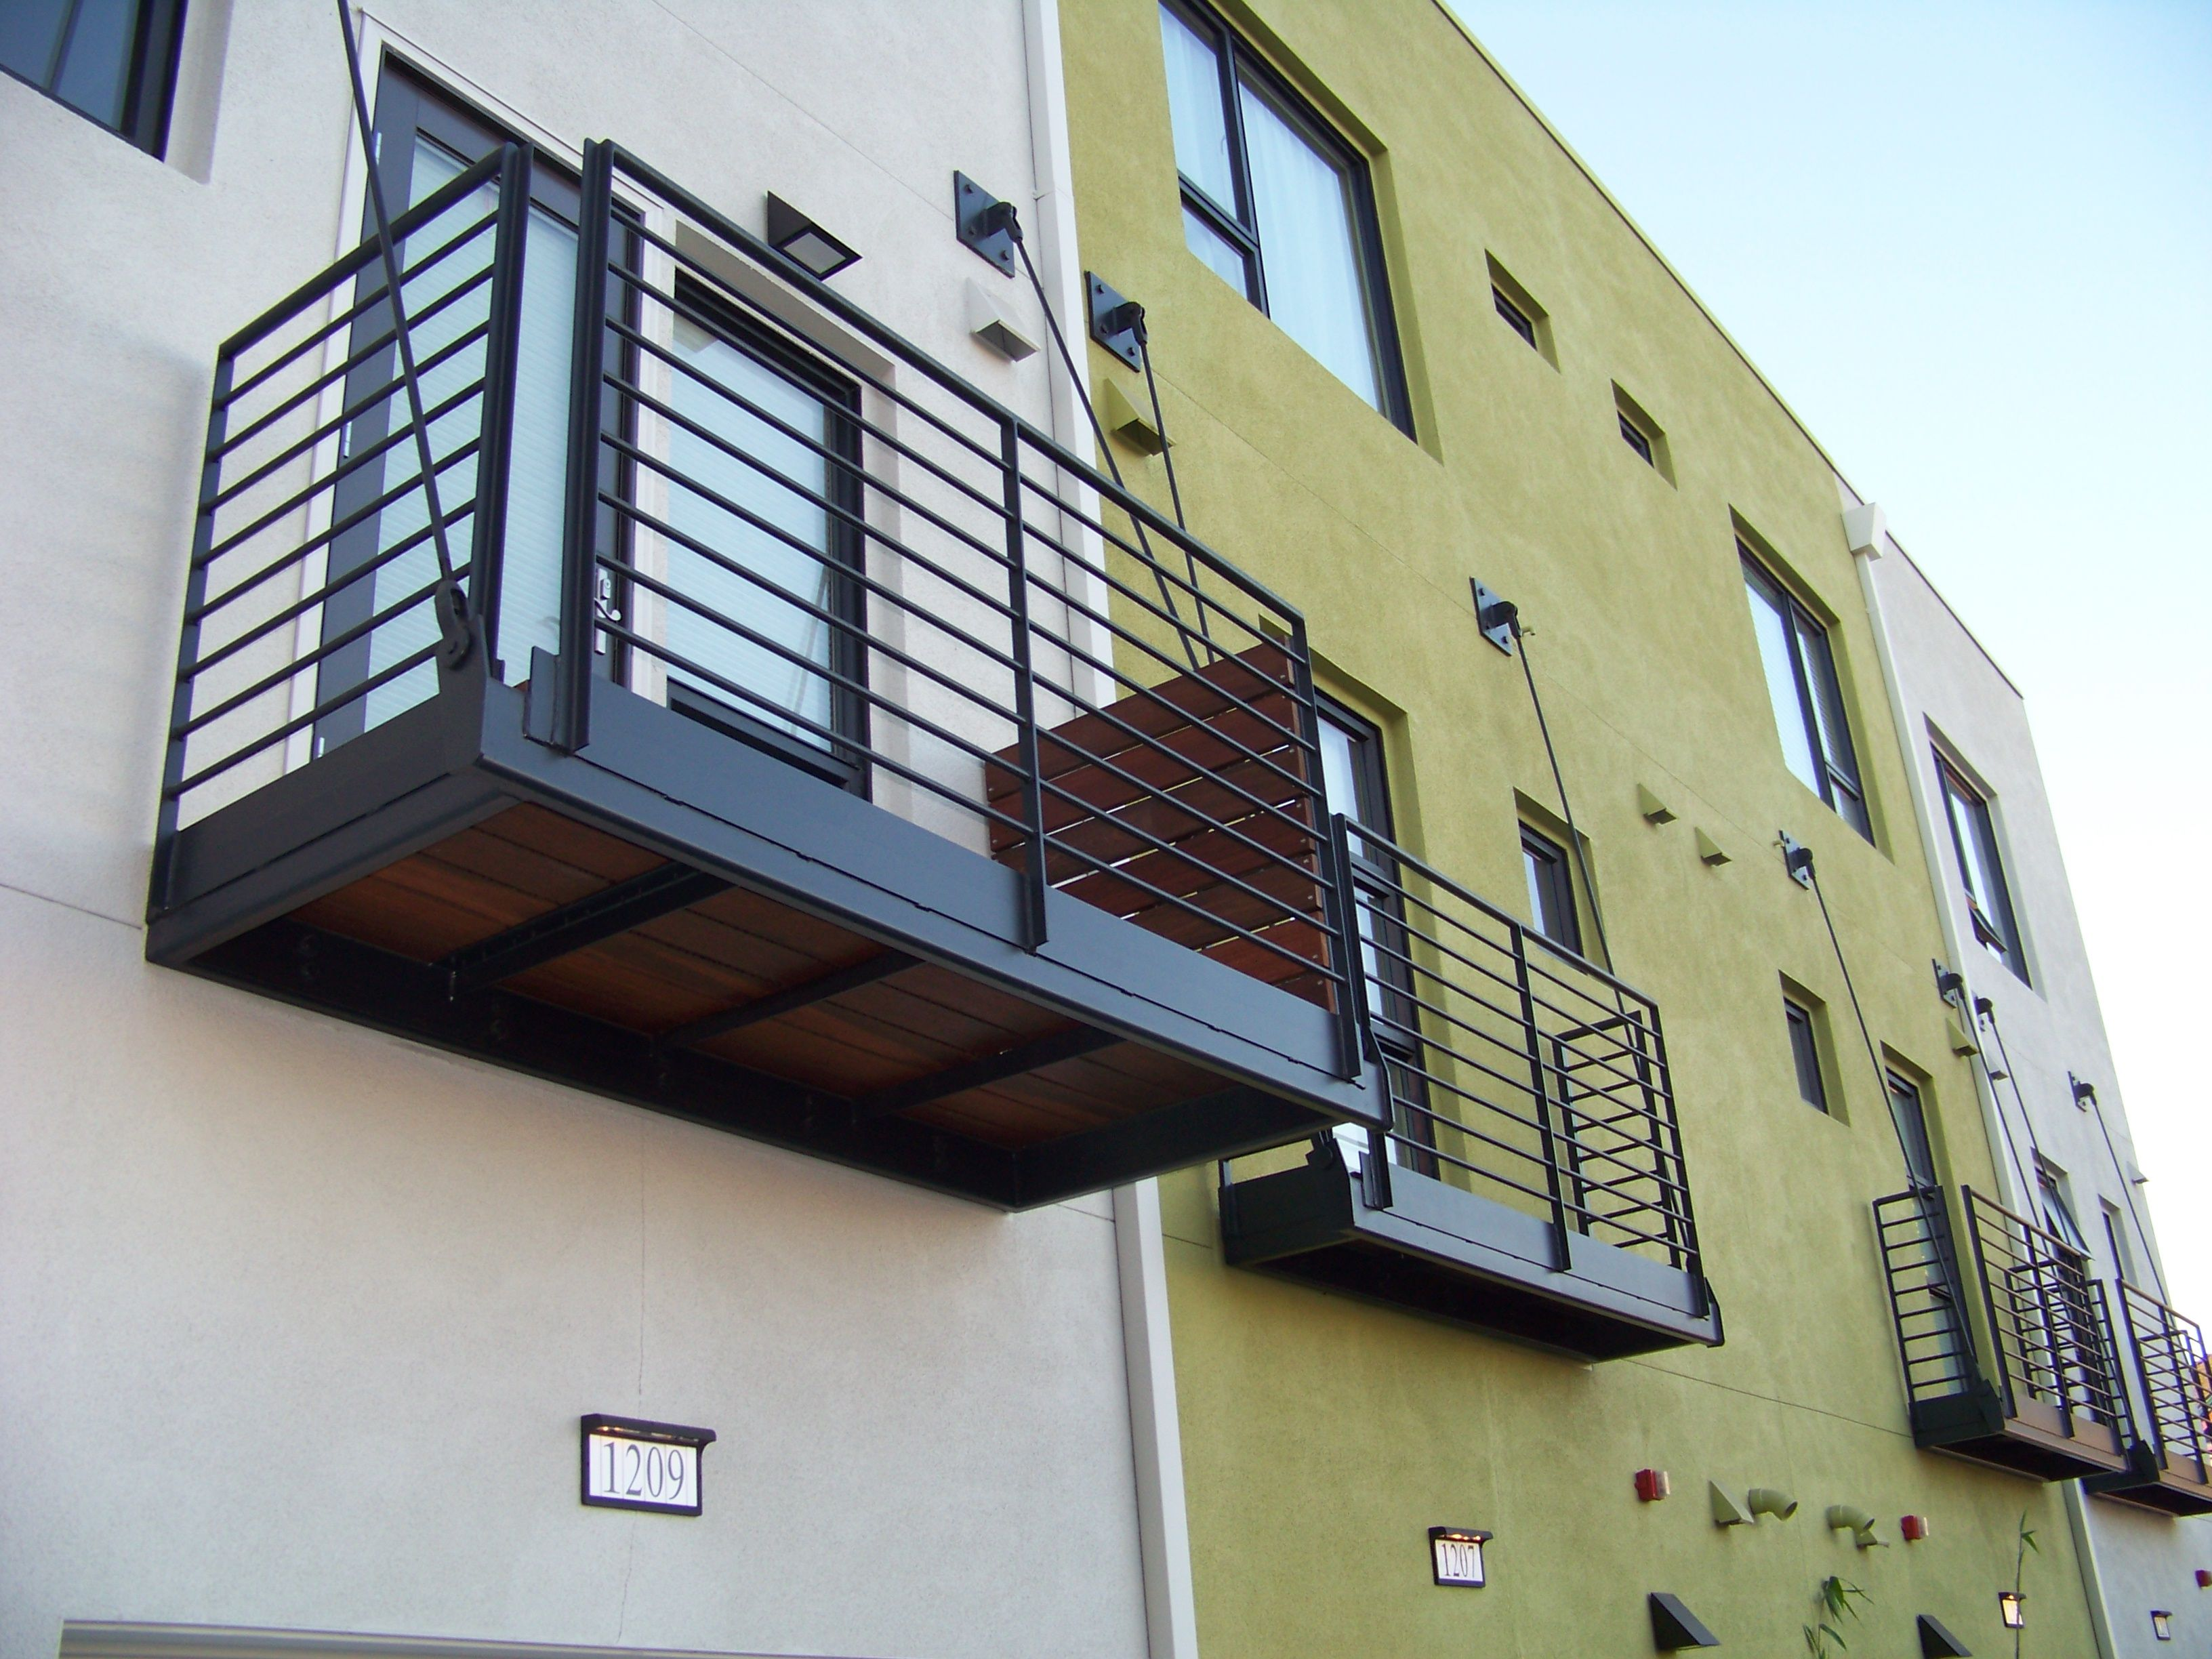 steel balcony - Google zoeken | Balconies | Pinterest ...